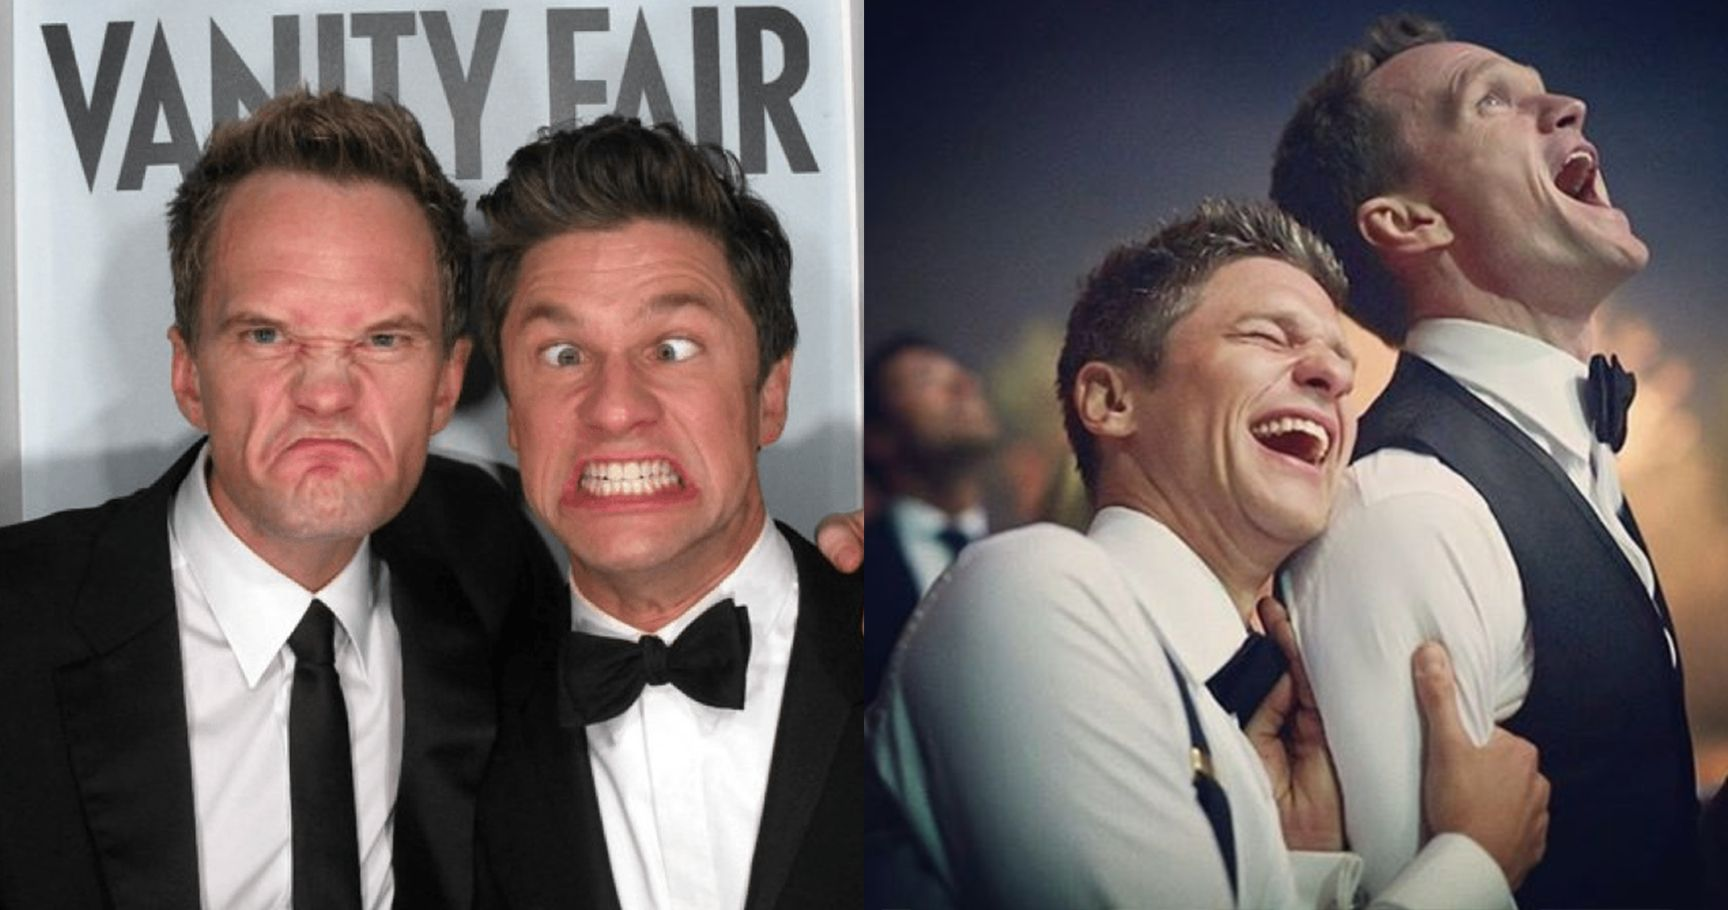 15 Times Neil Patrick Harris And David Burtka Were Our Favorite Hollywood Couple